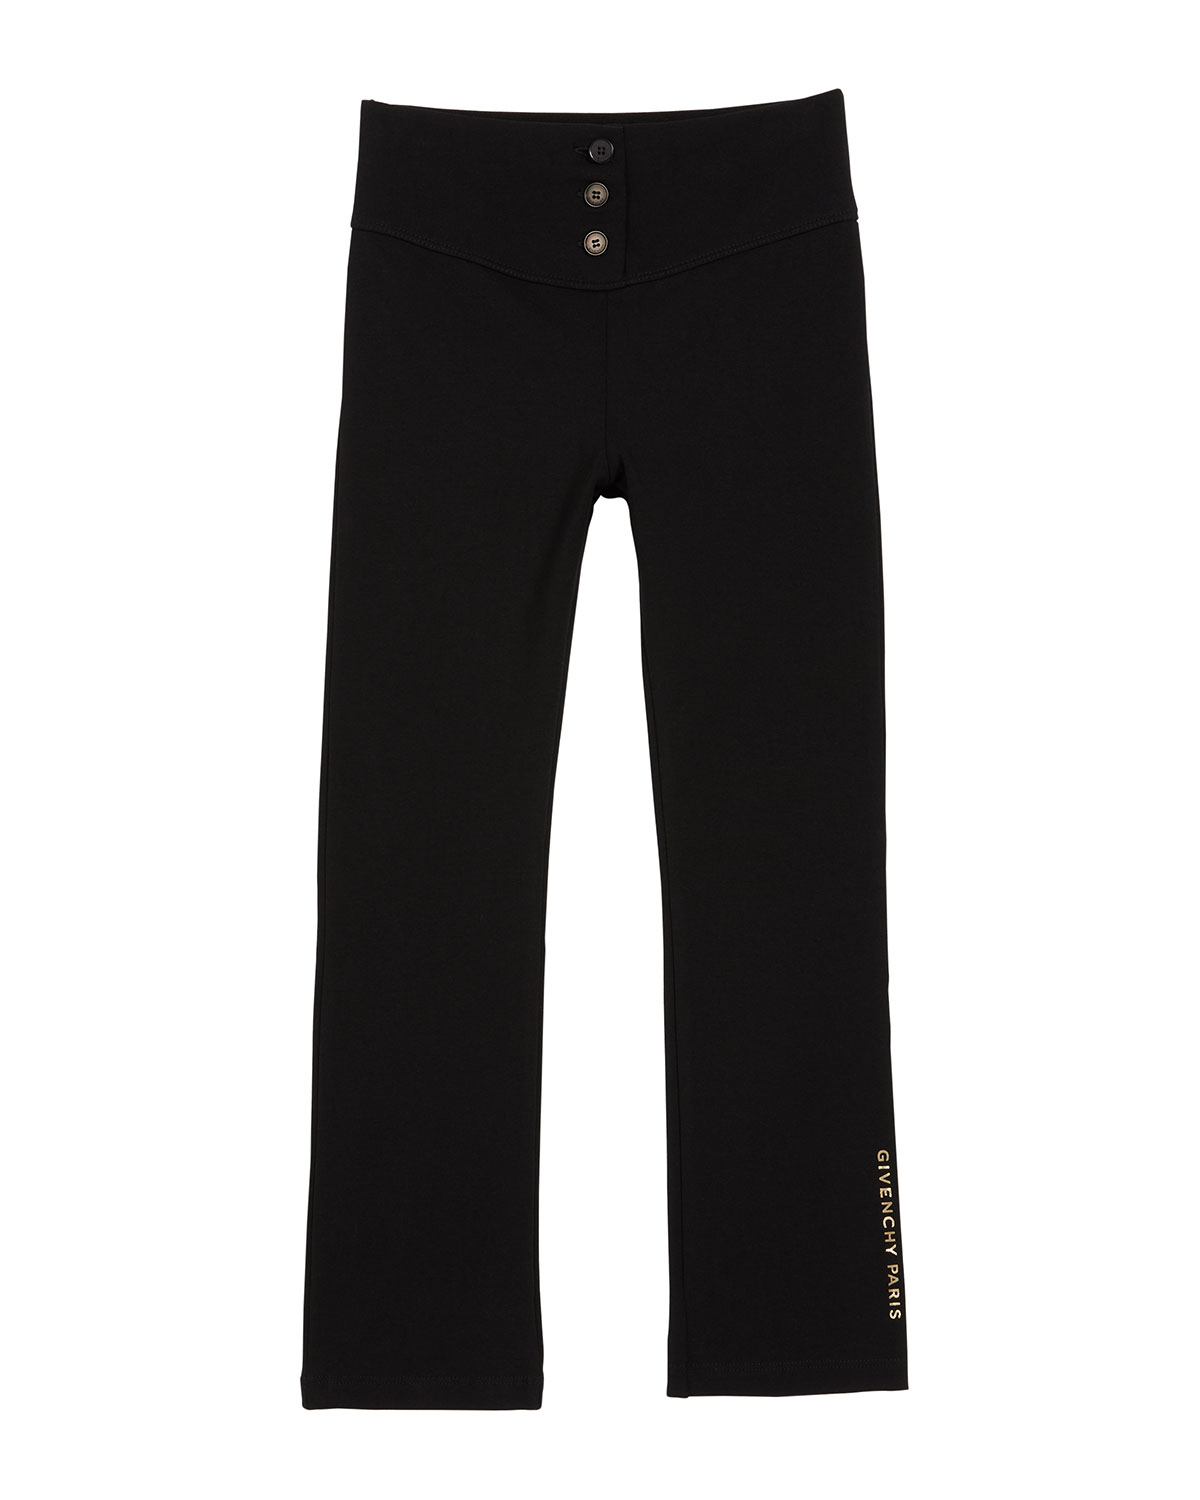 Givenchy Girl's Button-Front Logo Back Jersey Leggings, Size 4-10